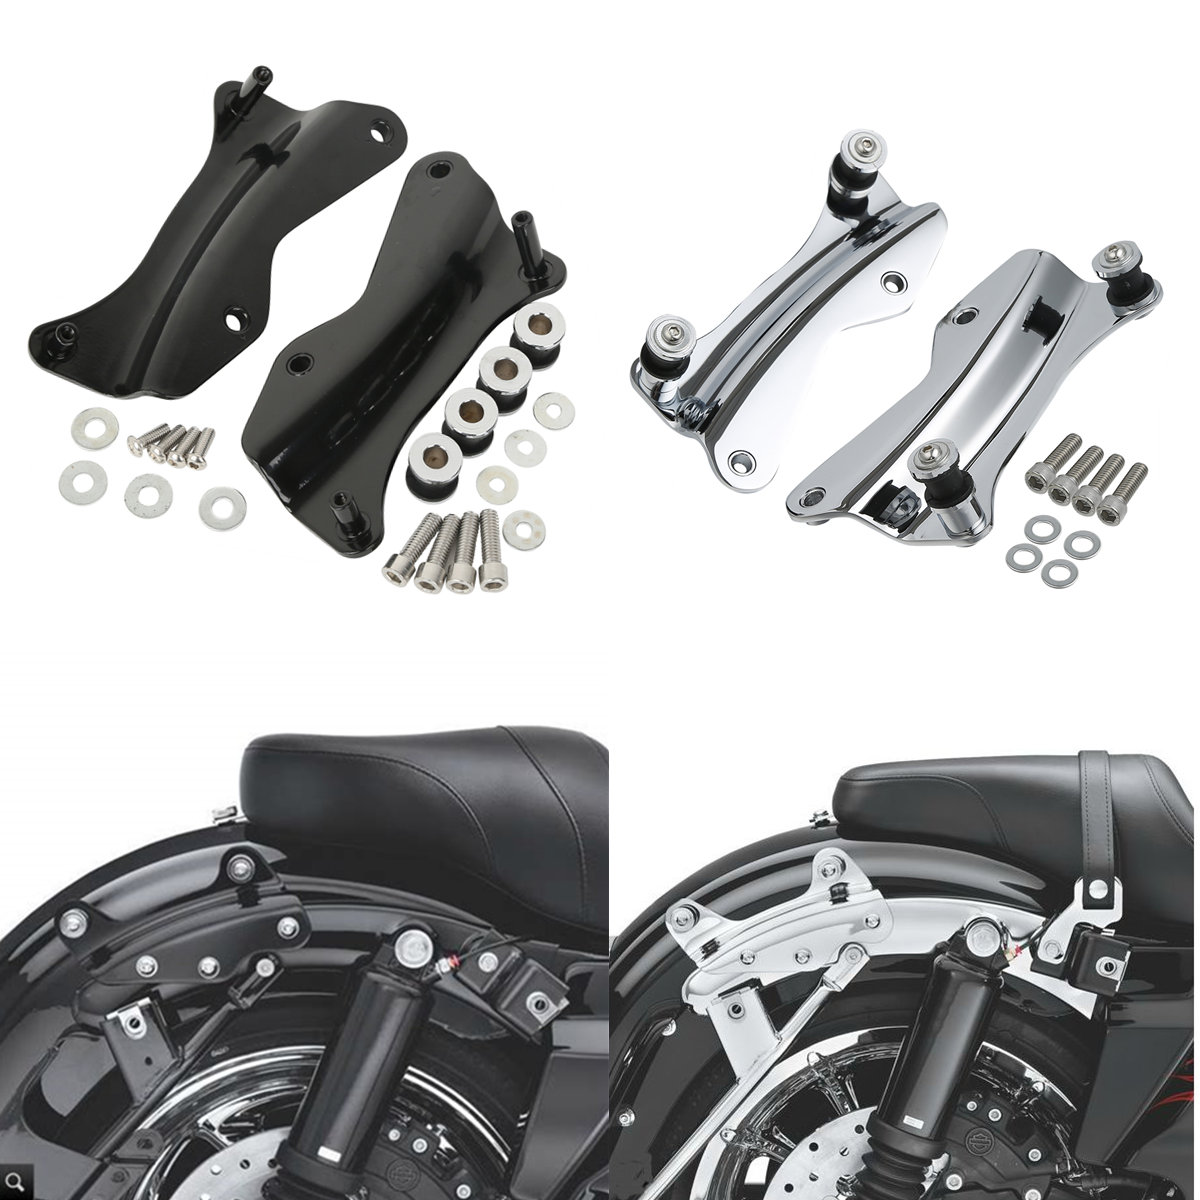 4 Point Docking Hardware Kit Fit For Harley Touring Road Electra Glide 2014-2019